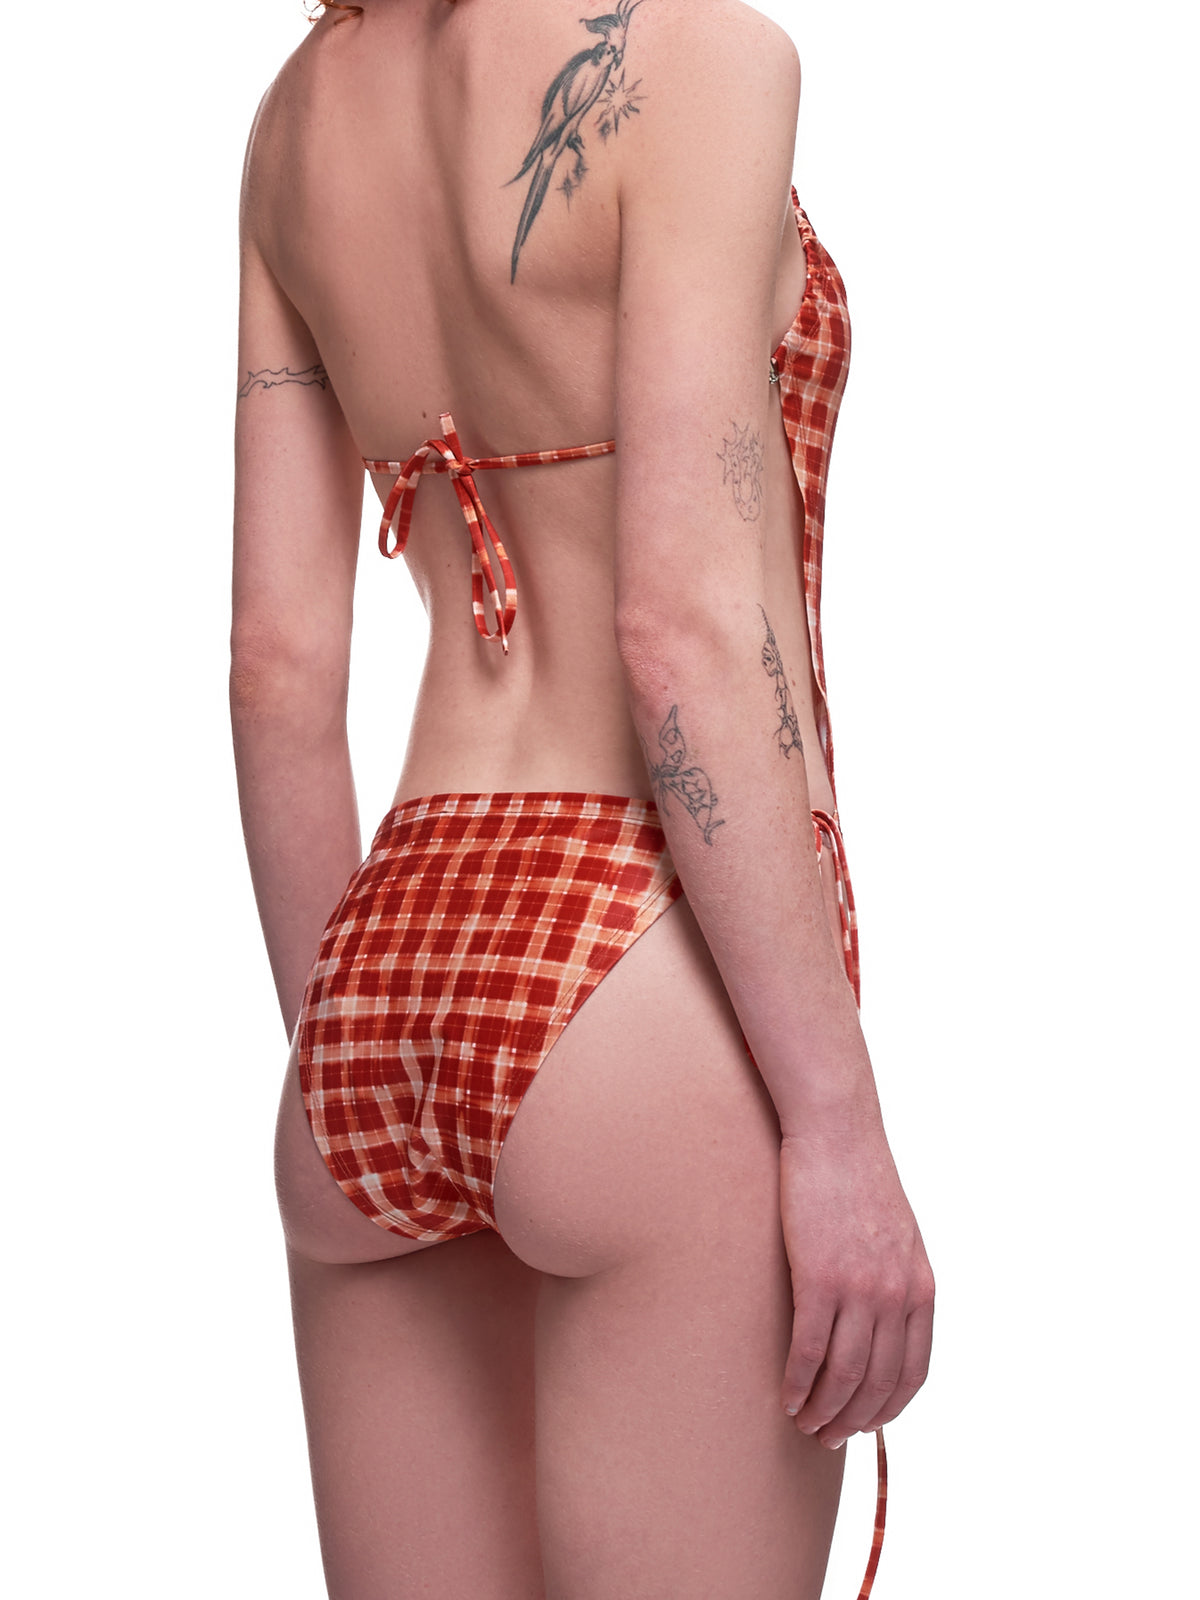 Perse Swimsuit (PES0RC-RED-CHECK)